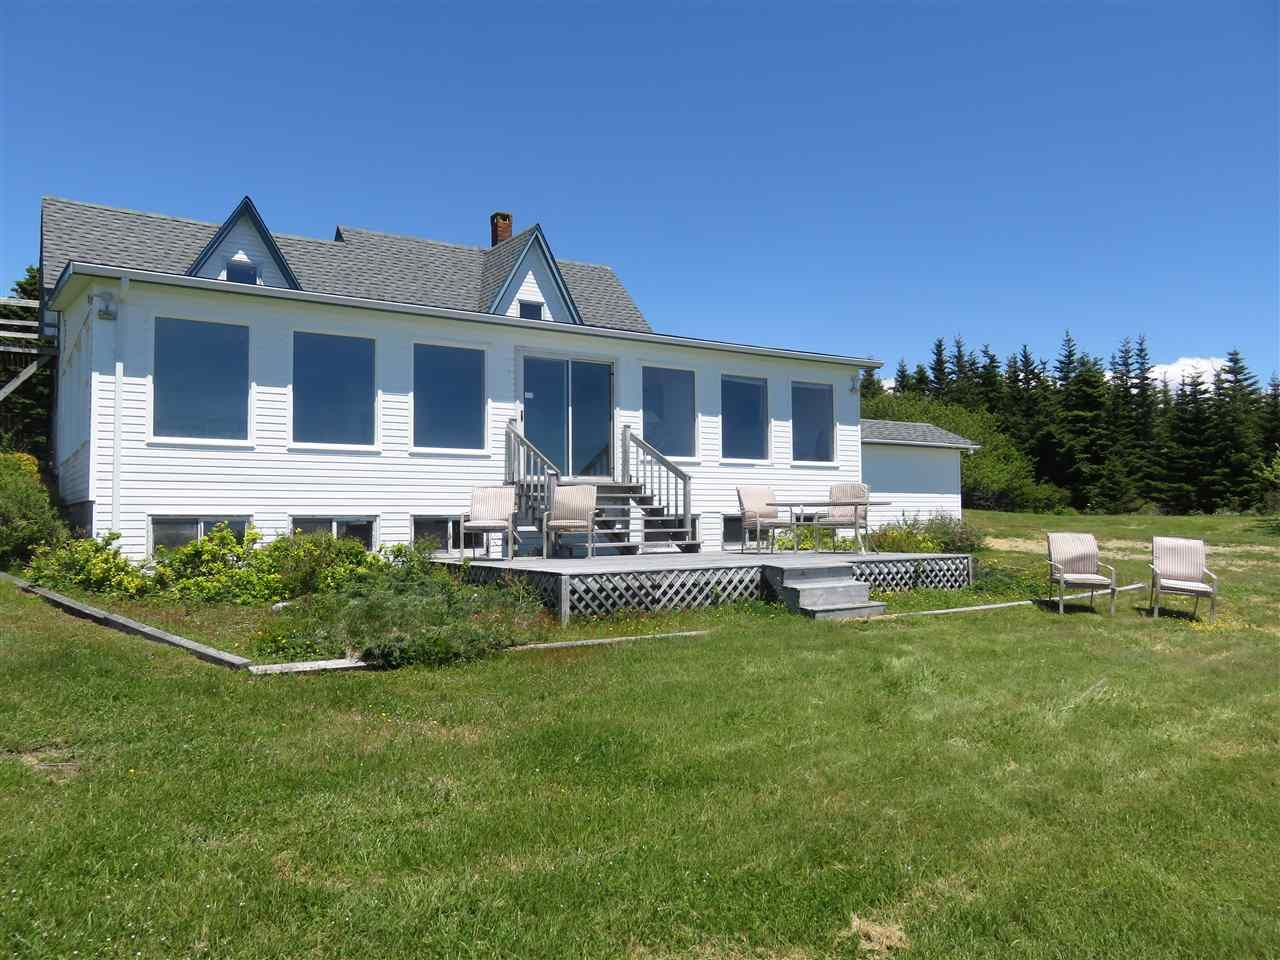 Main Photo: 65 West Bear Point Road in Woods Harbour: 407-Shelburne County Residential for sale (South Shore)  : MLS®# 202105123